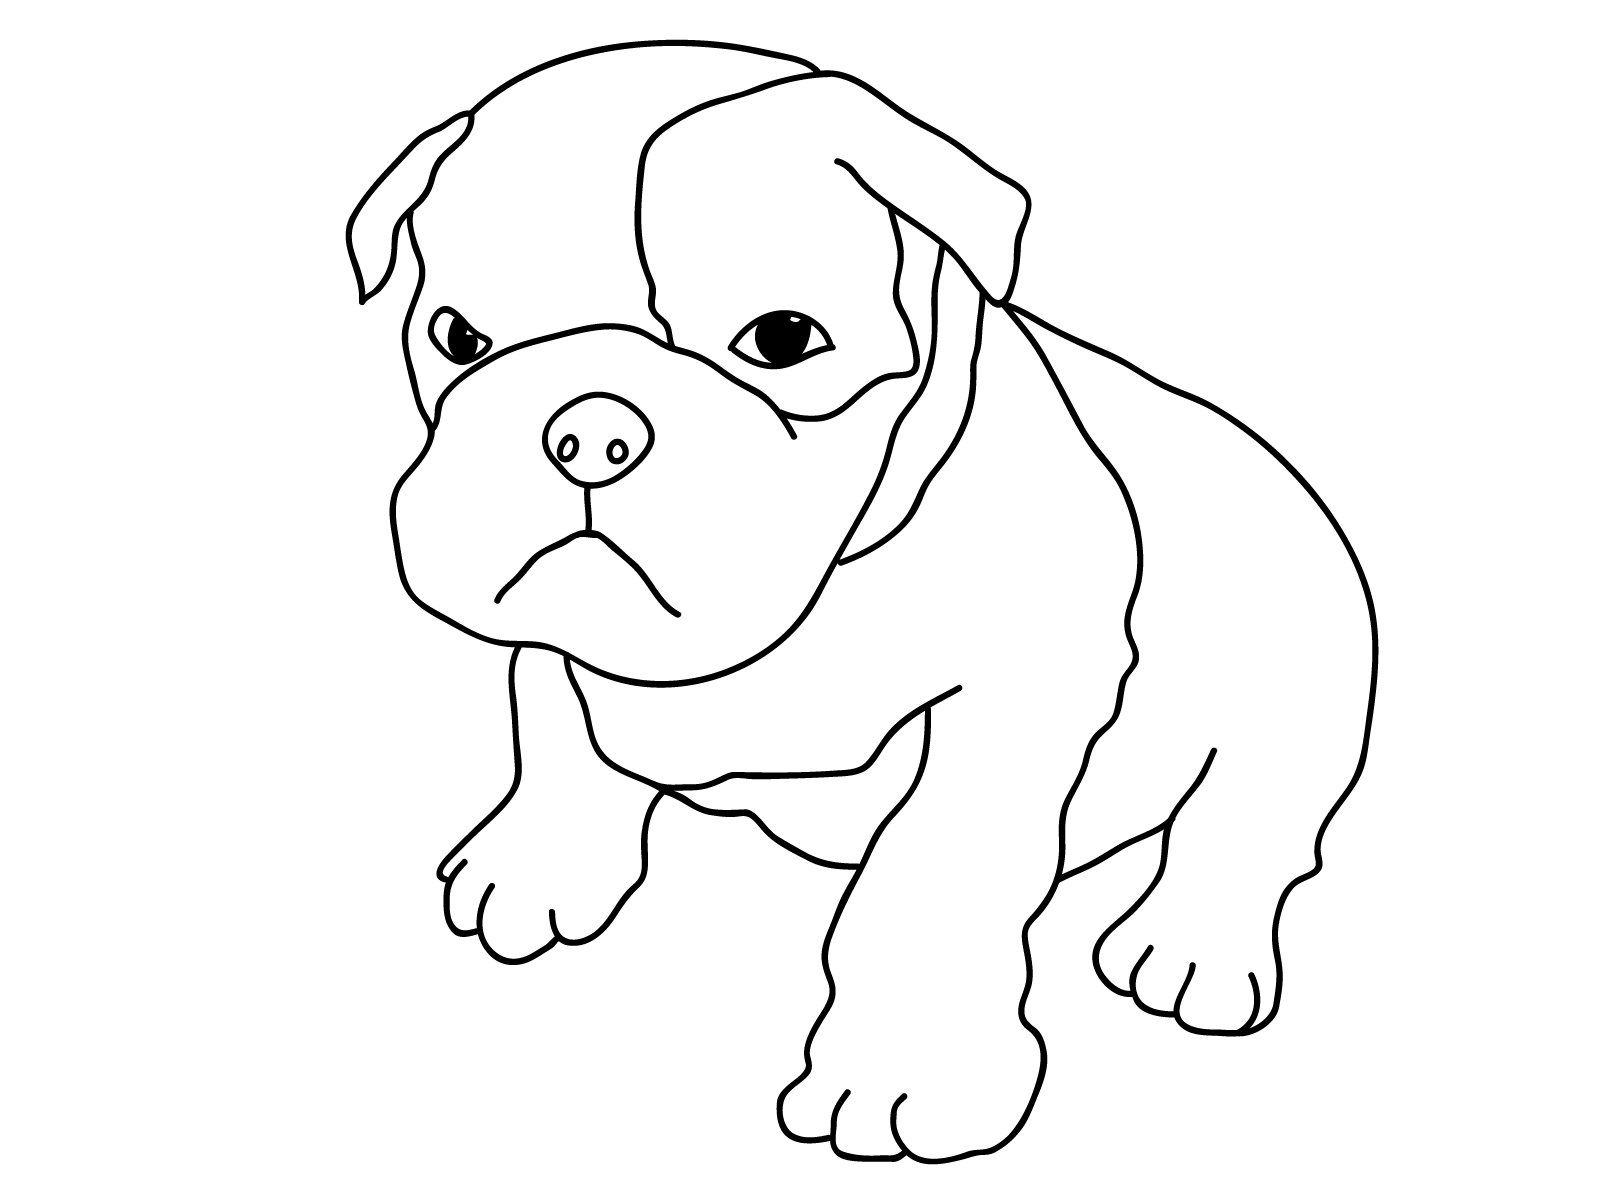 coloring pages to print dogs 30 free printable cute dog coloring pages scribblefun pages coloring to print dogs